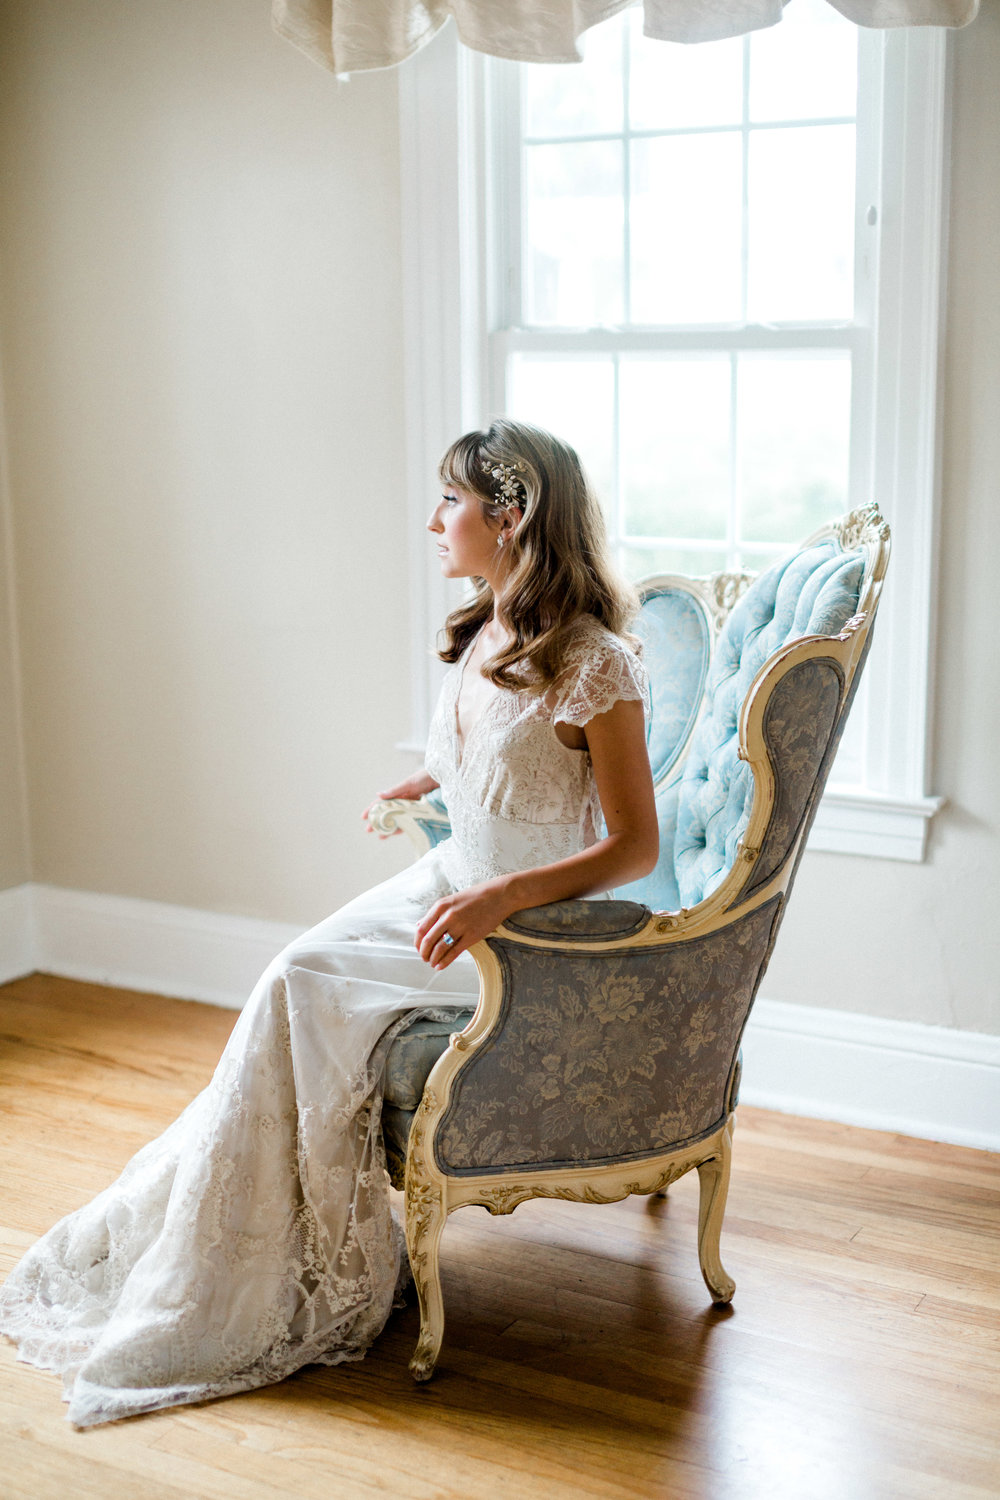 the cypress grove estate house in orlando florida, styled wedding bridal photo in vintage chair